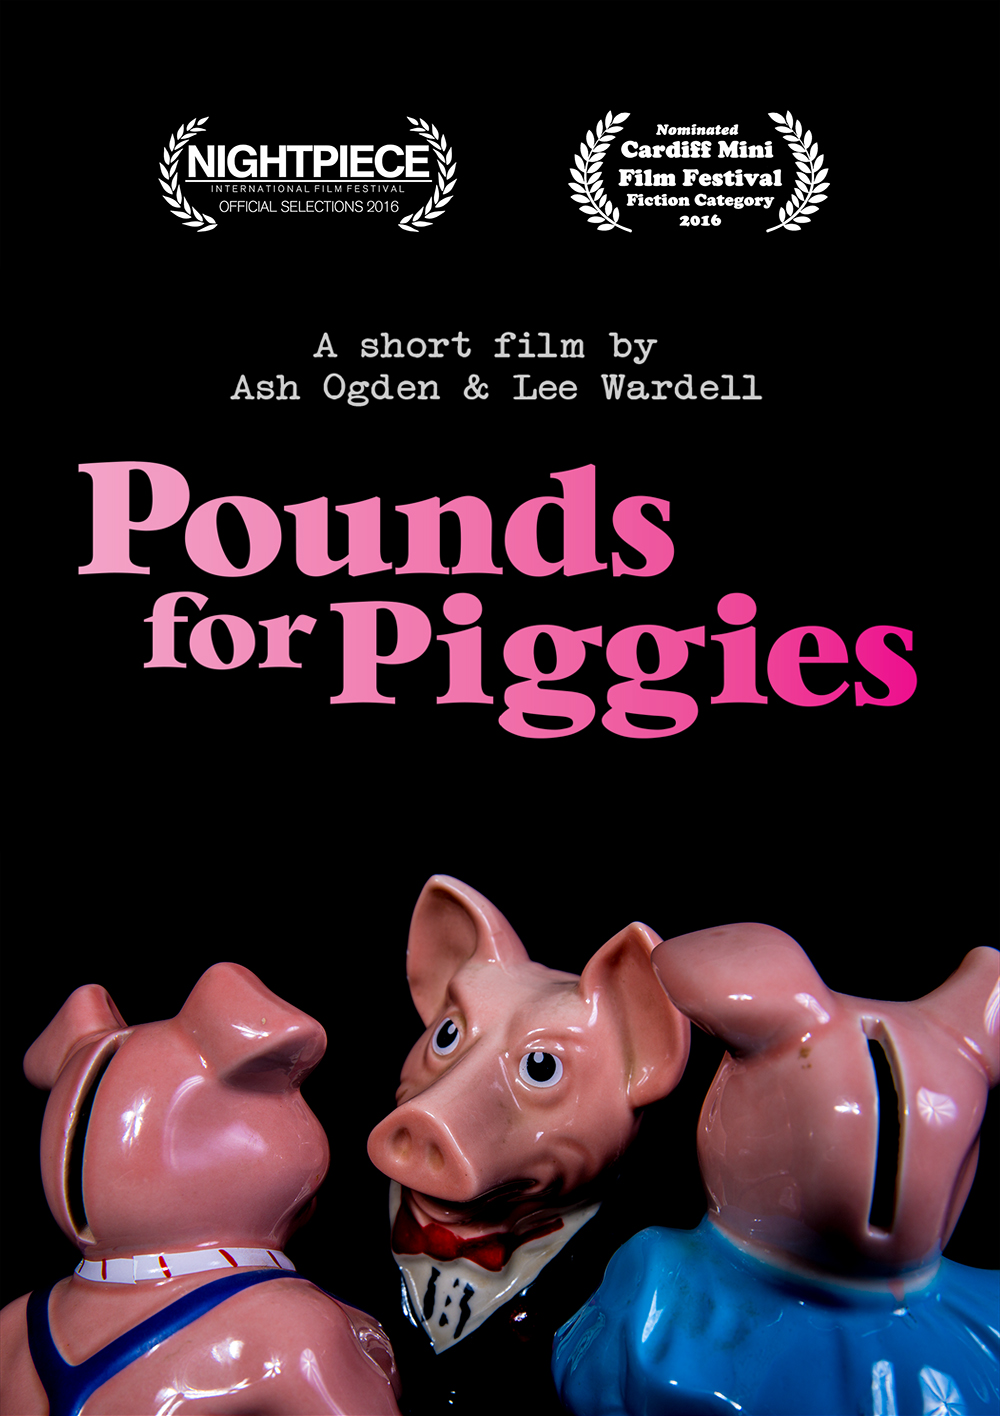 Pounds for Piggies Poster